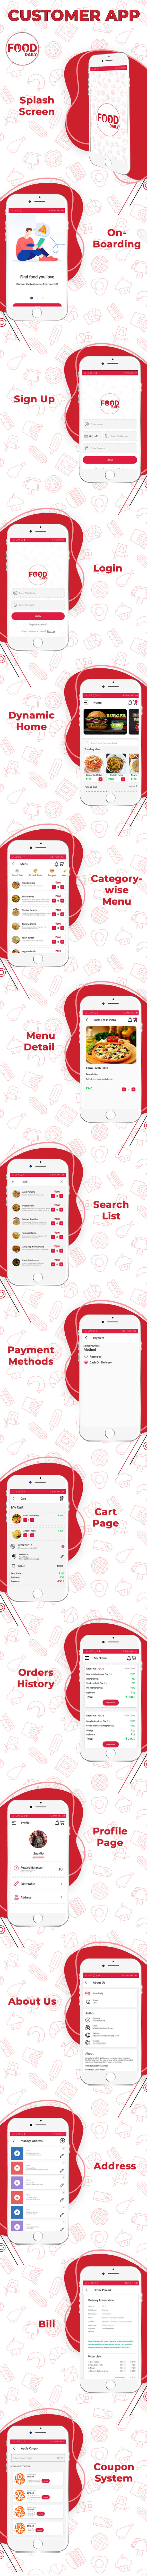 Food Daily - An On Demand Android Food Delivery App, Delivery Boy App and Restaurant App - 2